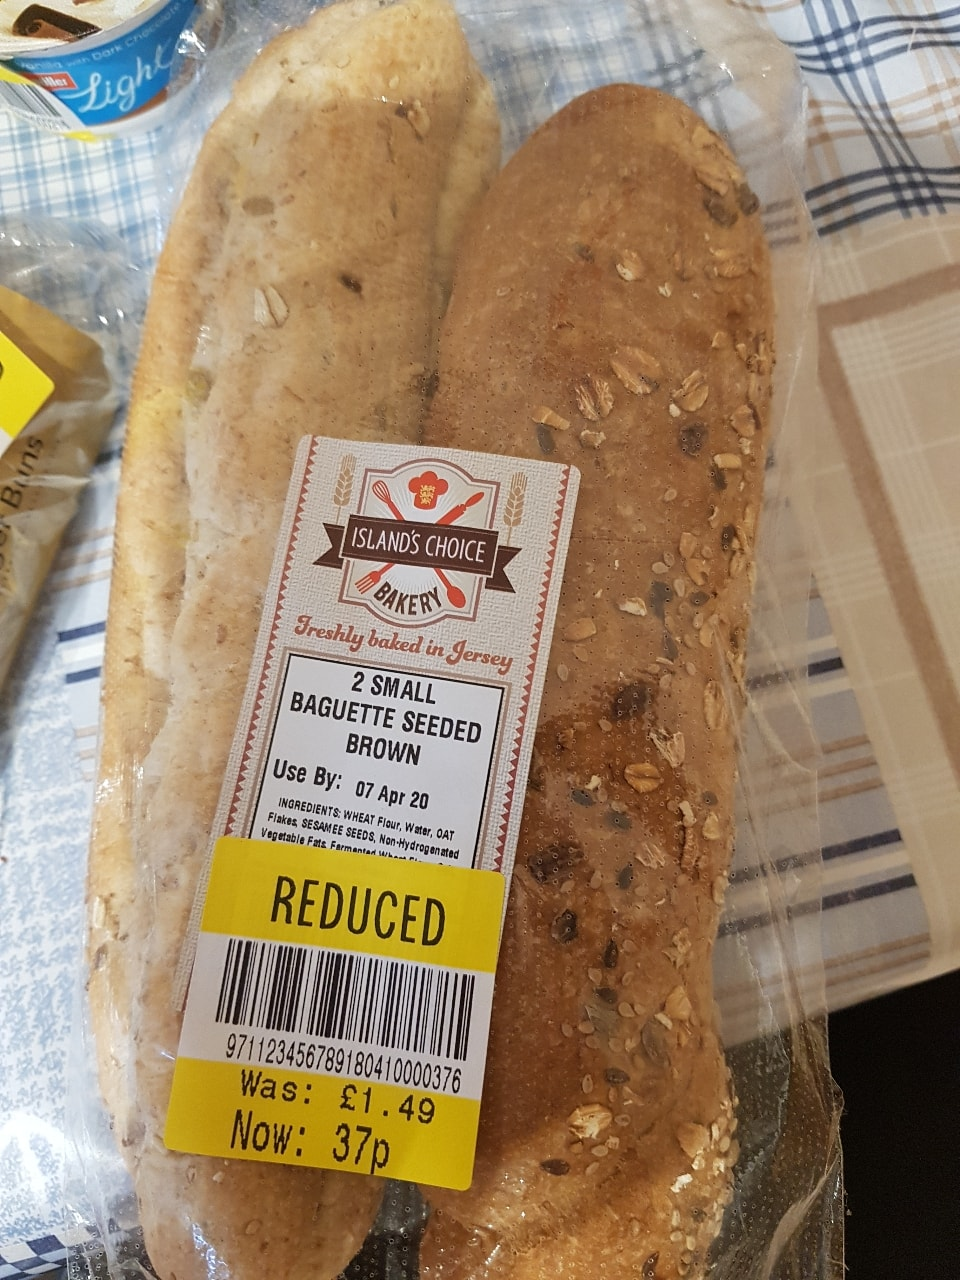 2 small baguette seeded brown